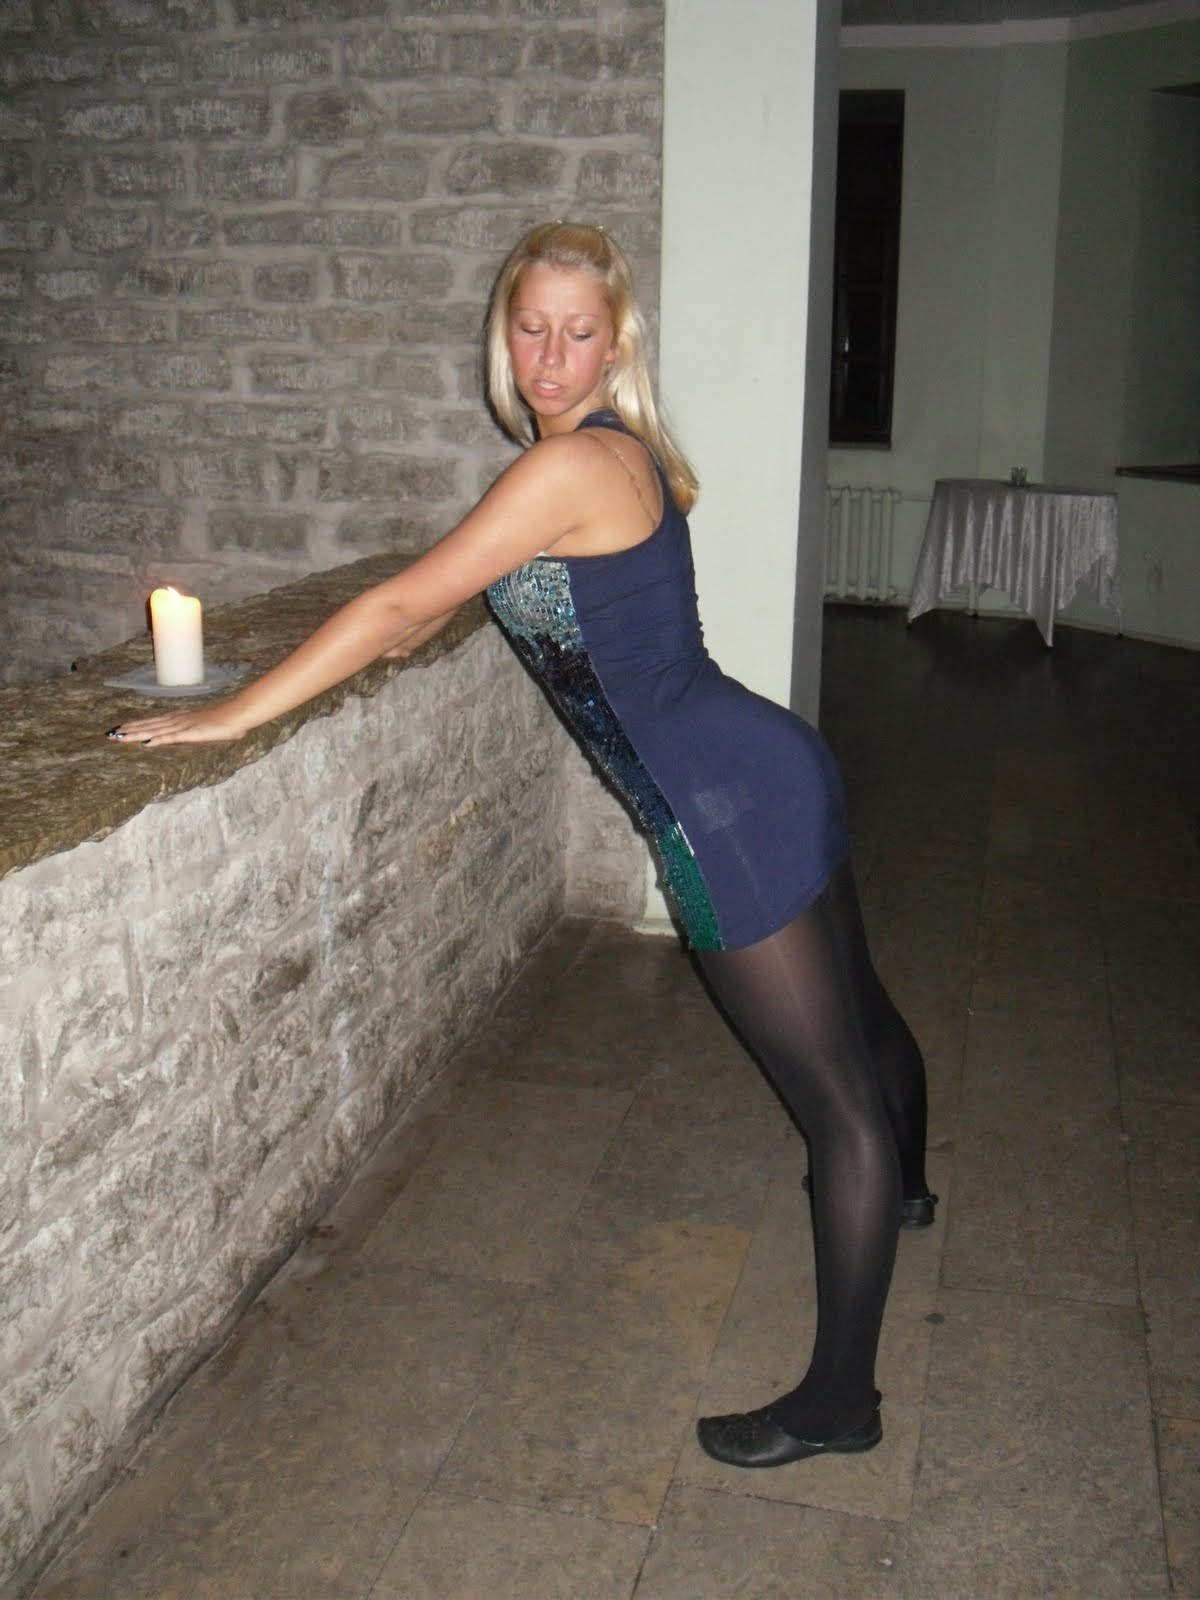 Girls amateur pantyhose